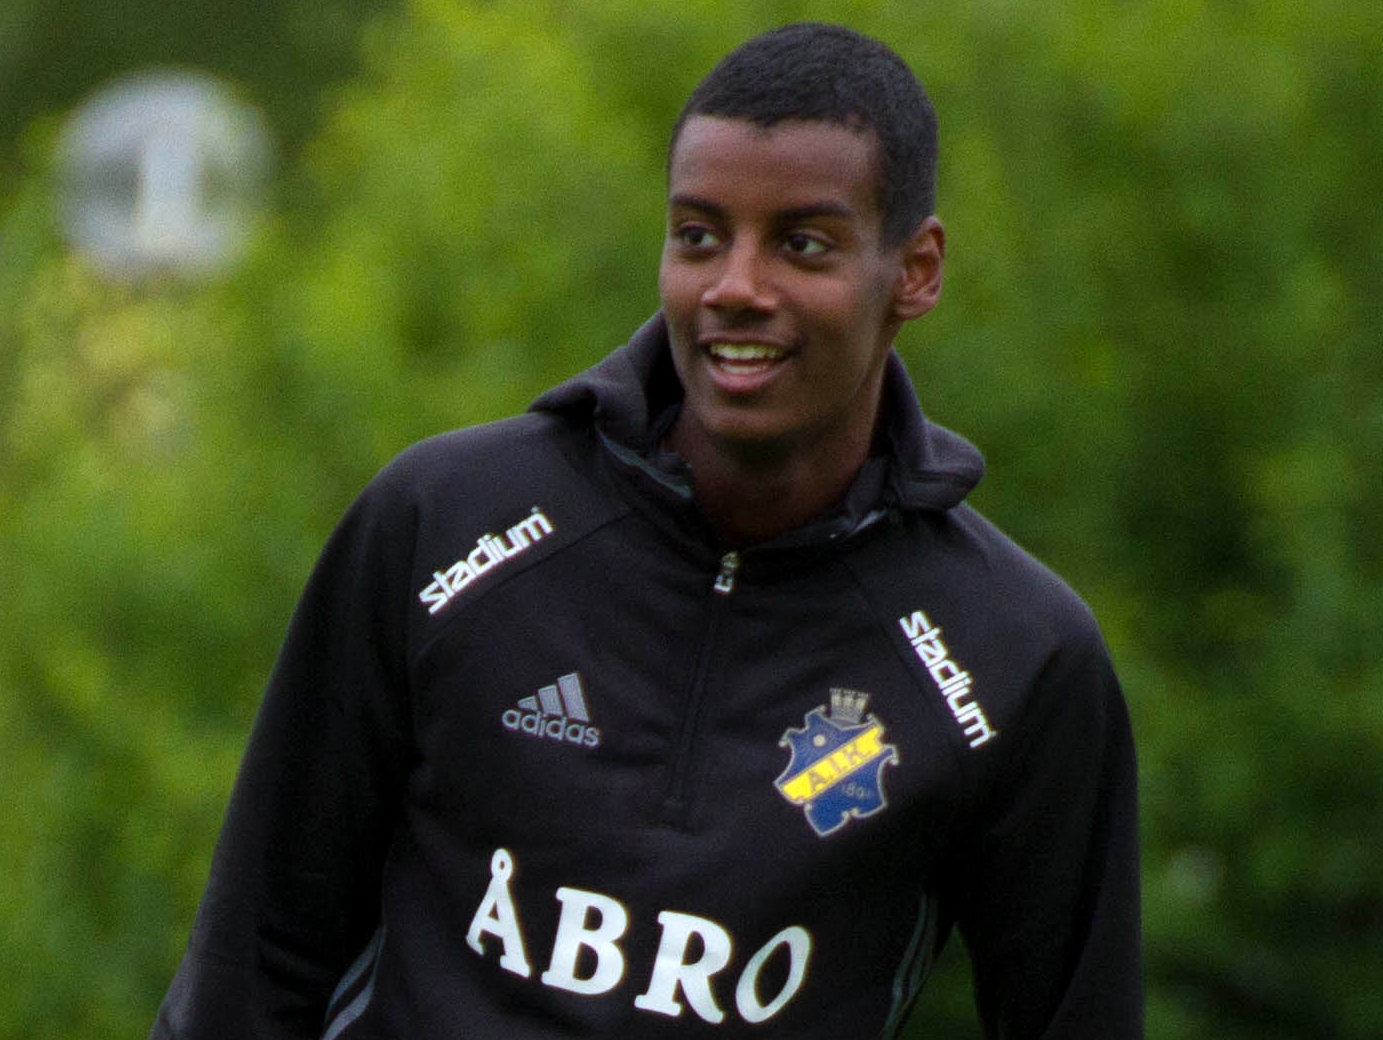 The 18-year old son of father (?) and mother(?) Alexander Isak in 2018 photo. Alexander Isak earned a  million dollar salary - leaving the net worth at 0.5 million in 2018